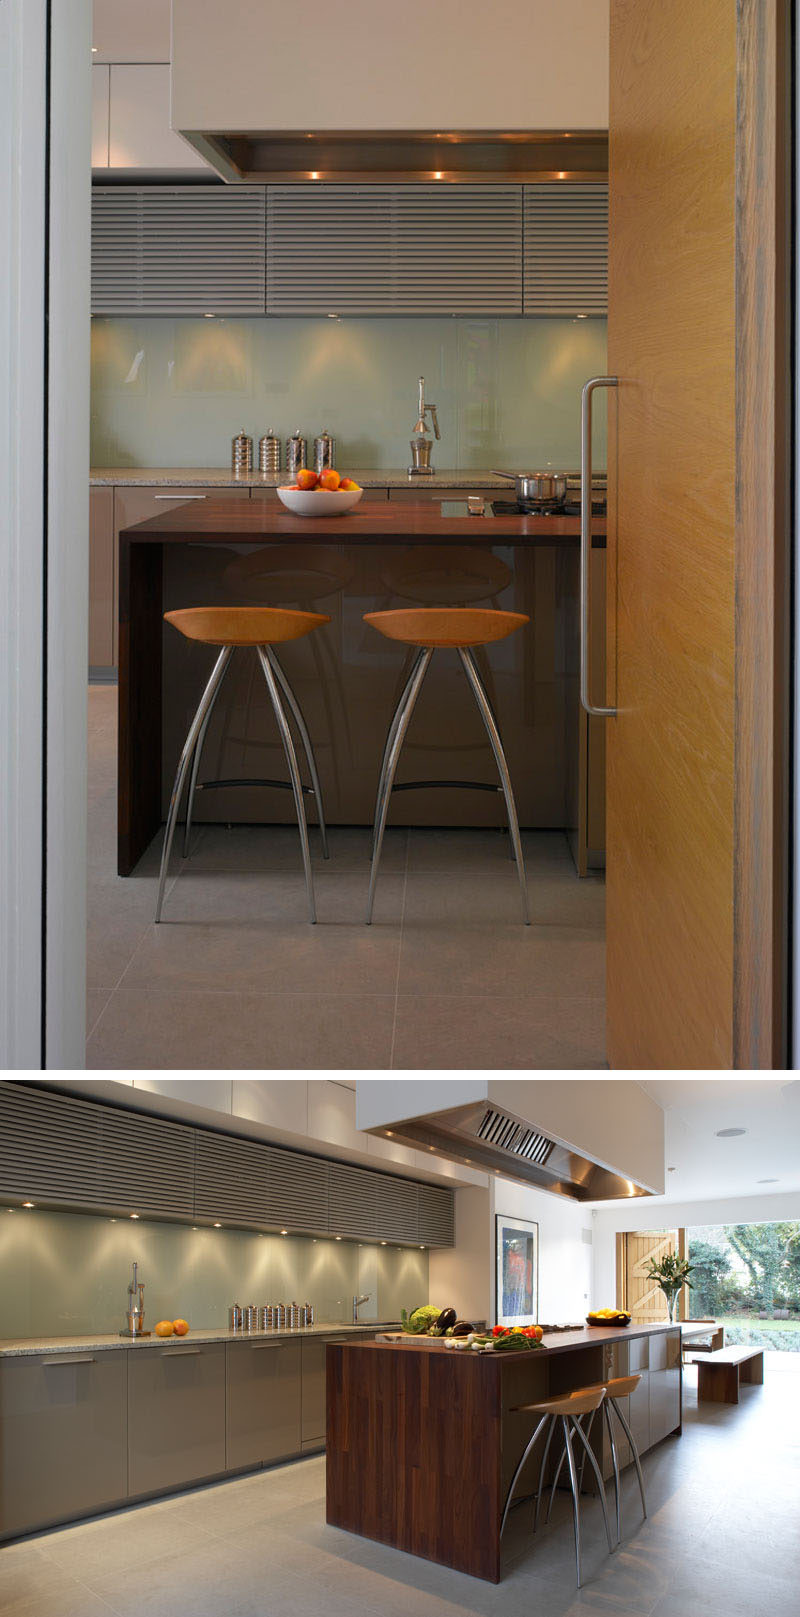 A large wood covered island is central to this modern kitchen, and provides a place for casual seating and additional storage.